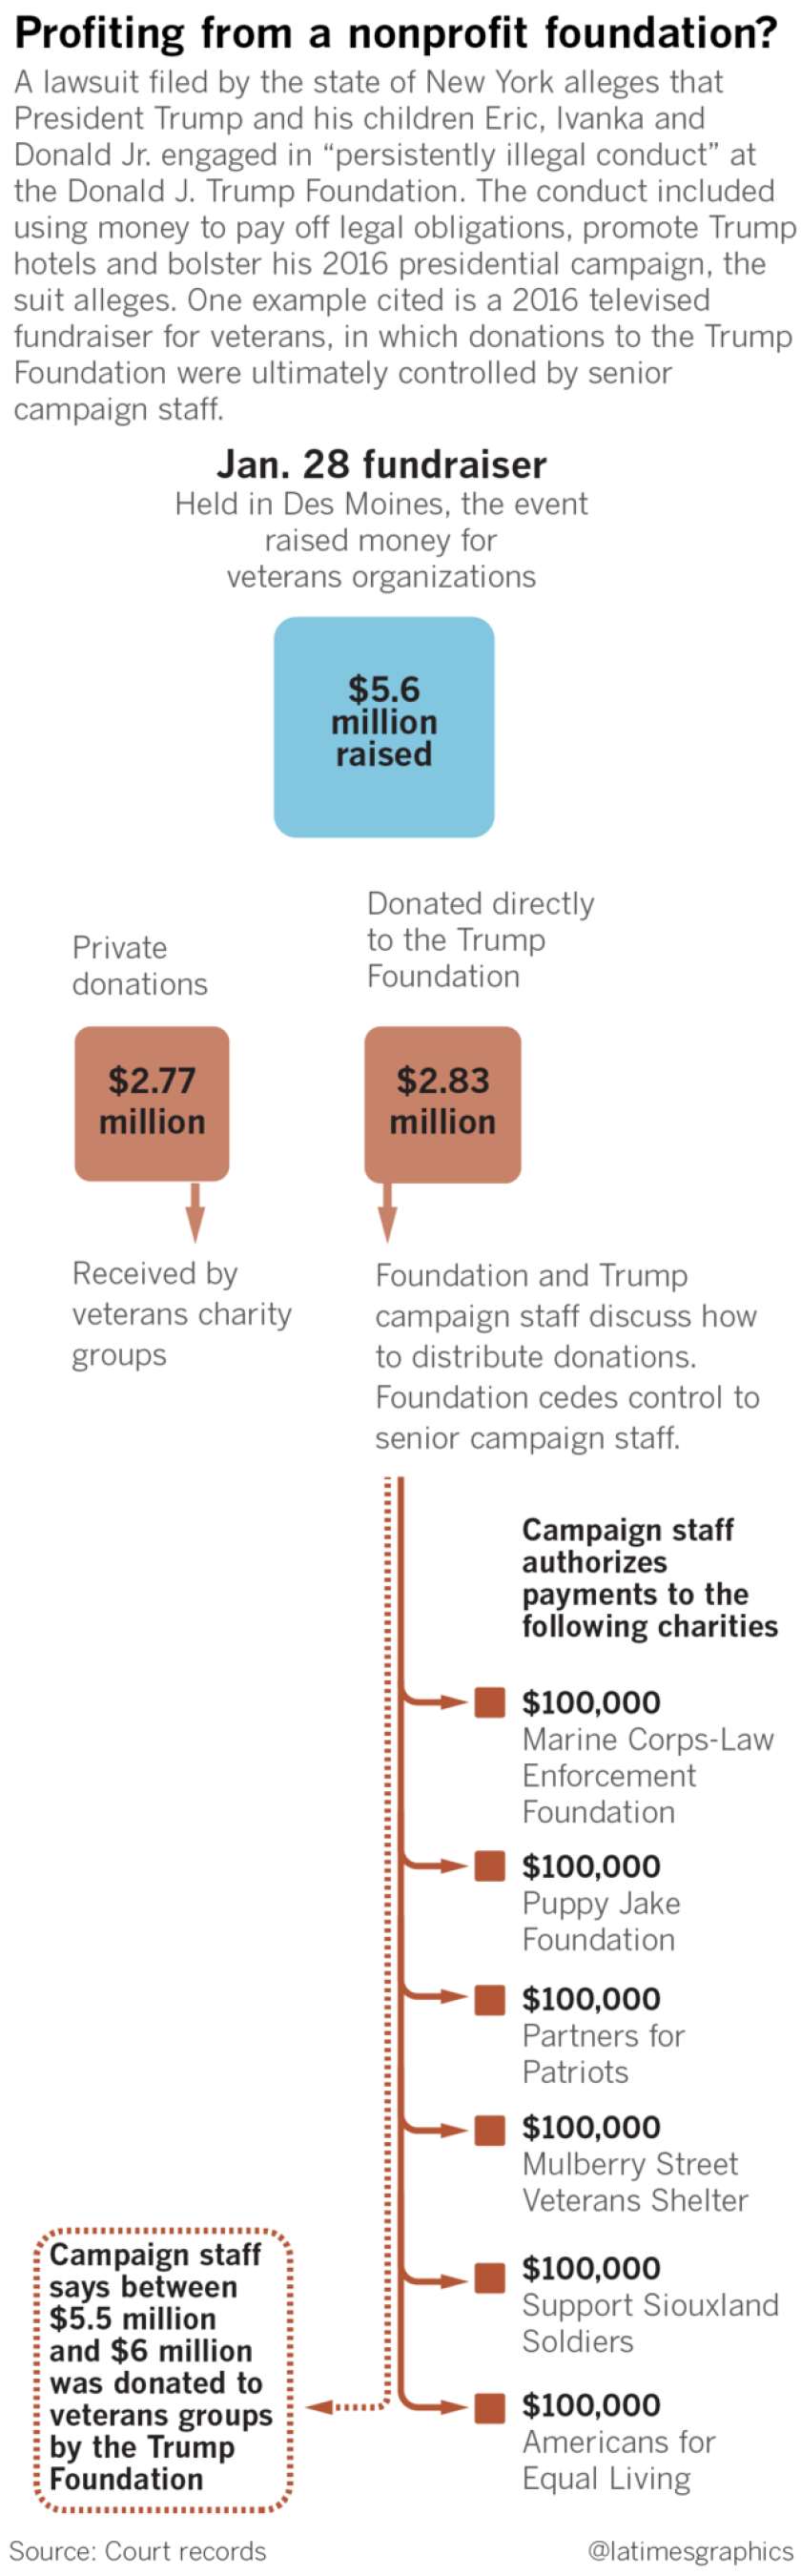 "A lawsuit filed in New York alleges President Trump, Donald J. Trump Jr., Eric F. Trump and Ivanka Trump engaged in ""persistently illegal conduct"" at the Donald J. Trump Foundation. The conduct included using money to pay off legal obligations, promote Trump hotels & bolster his campaign."